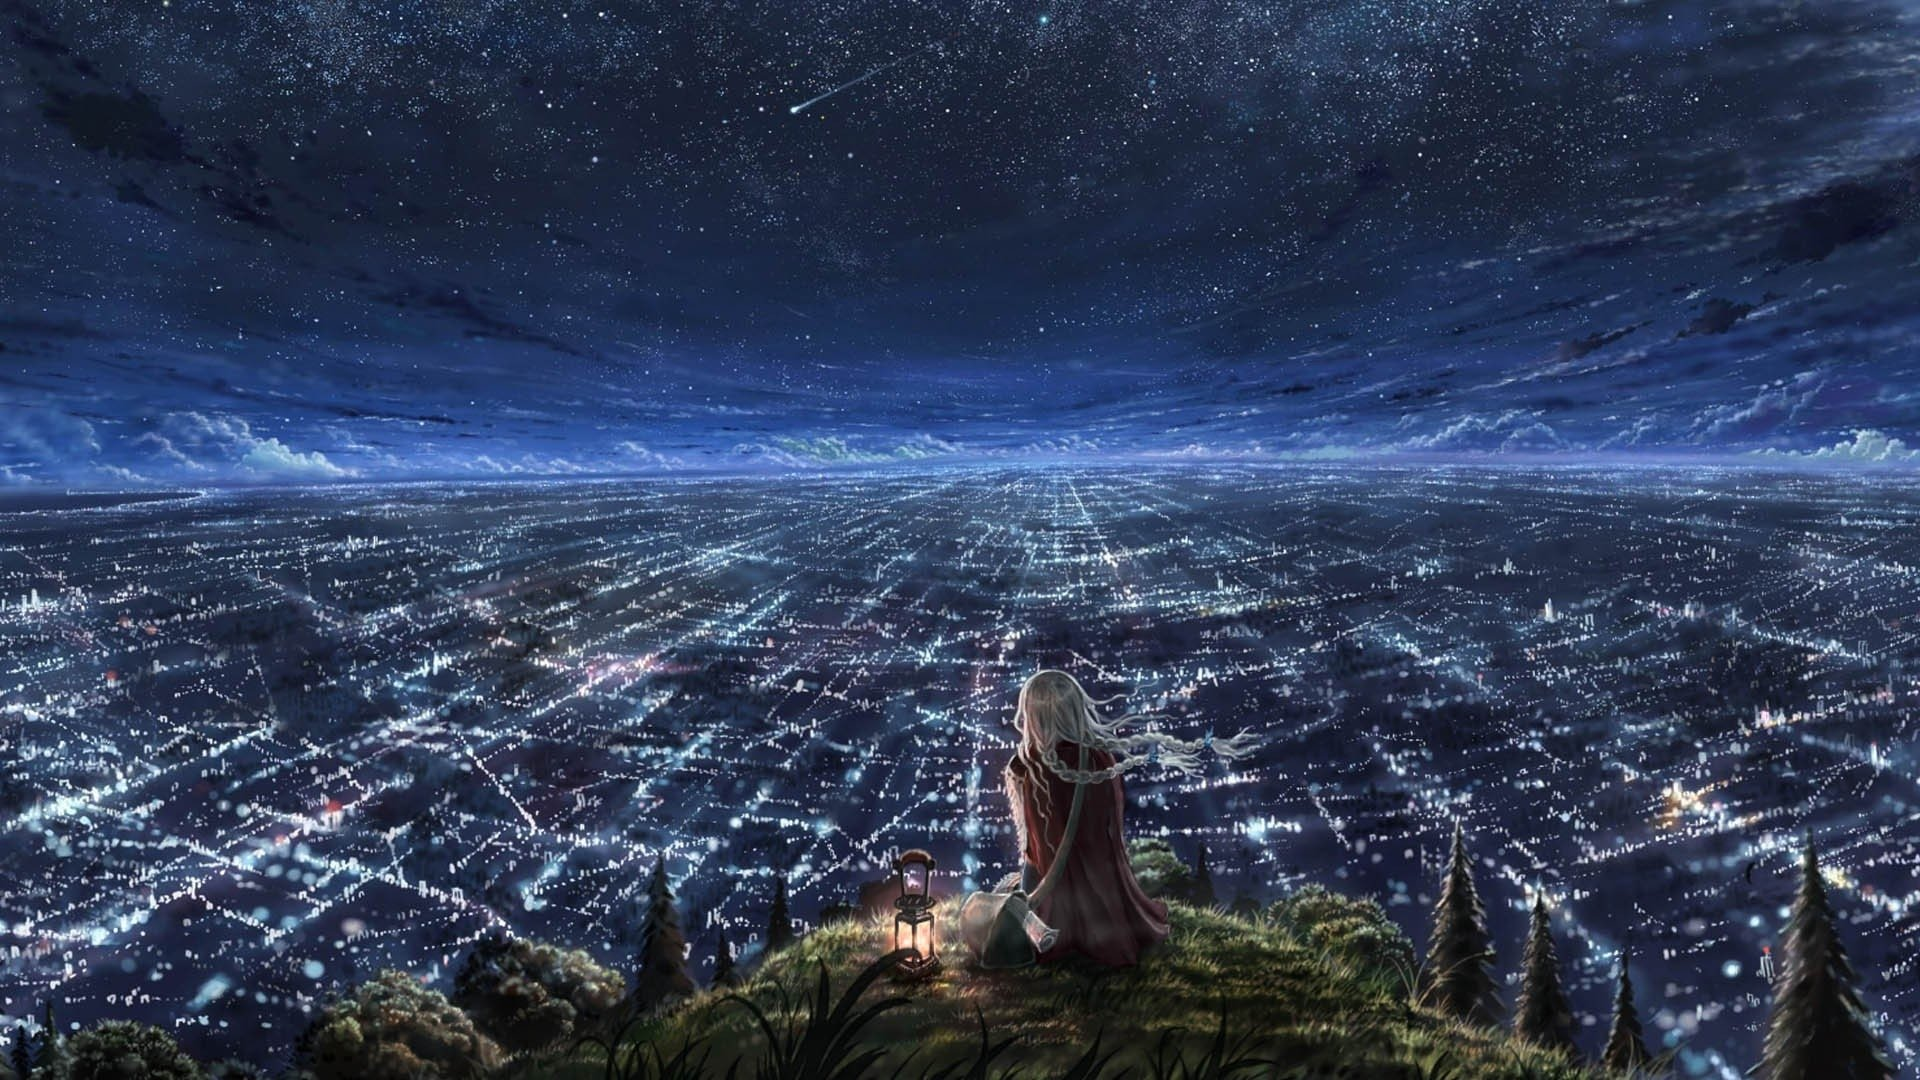 Fantasy - Landscape  Star Light Horizon Anime Fantasy Girl City Night Cityscape Braid Wallpaper